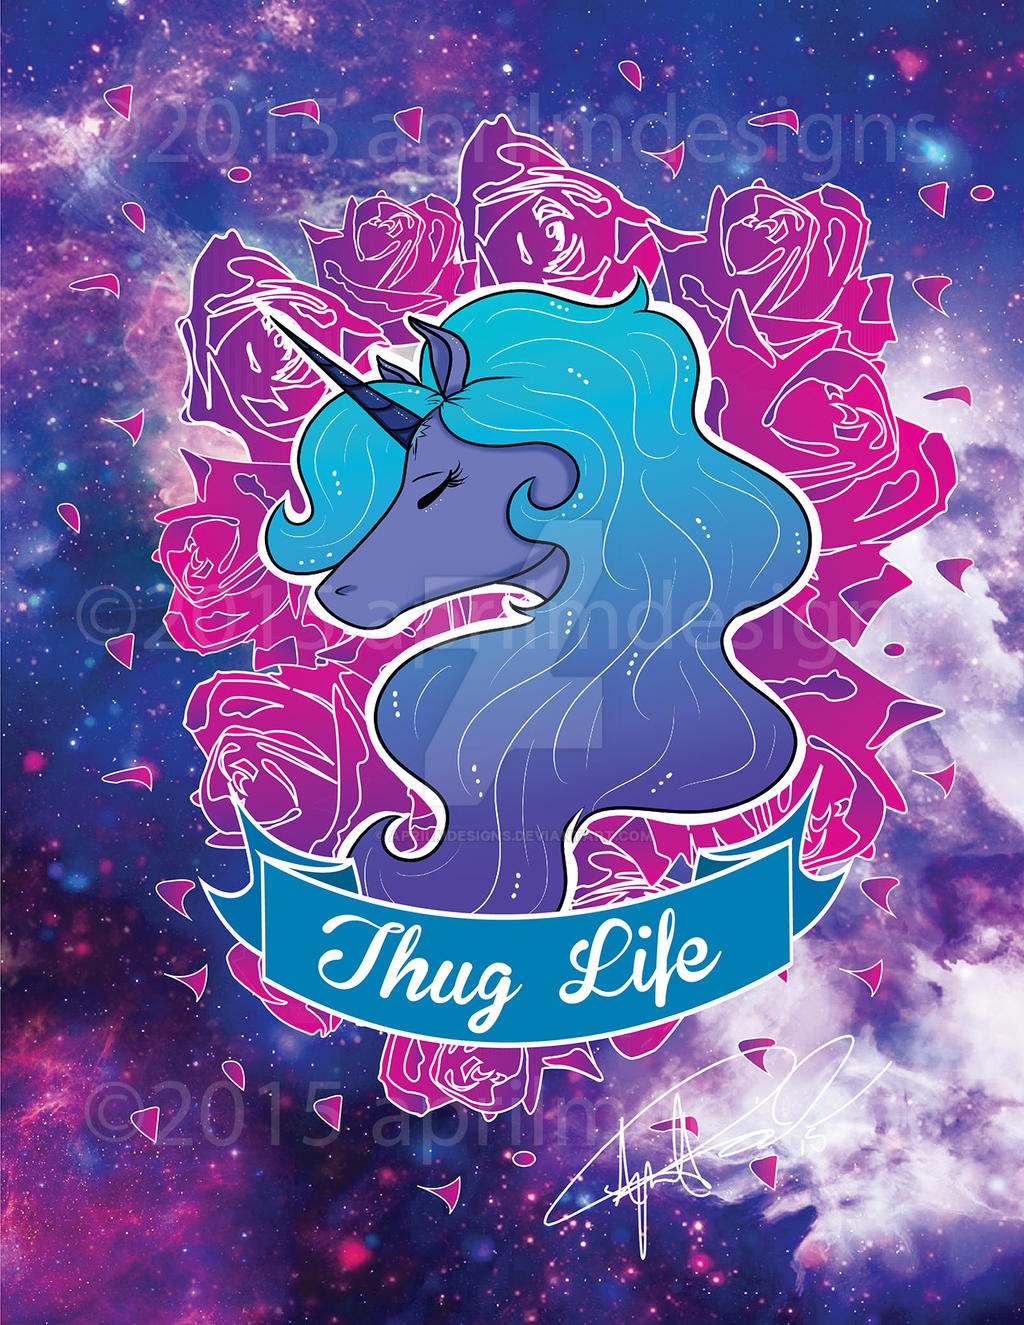 Thug Life by aprilmdesigns